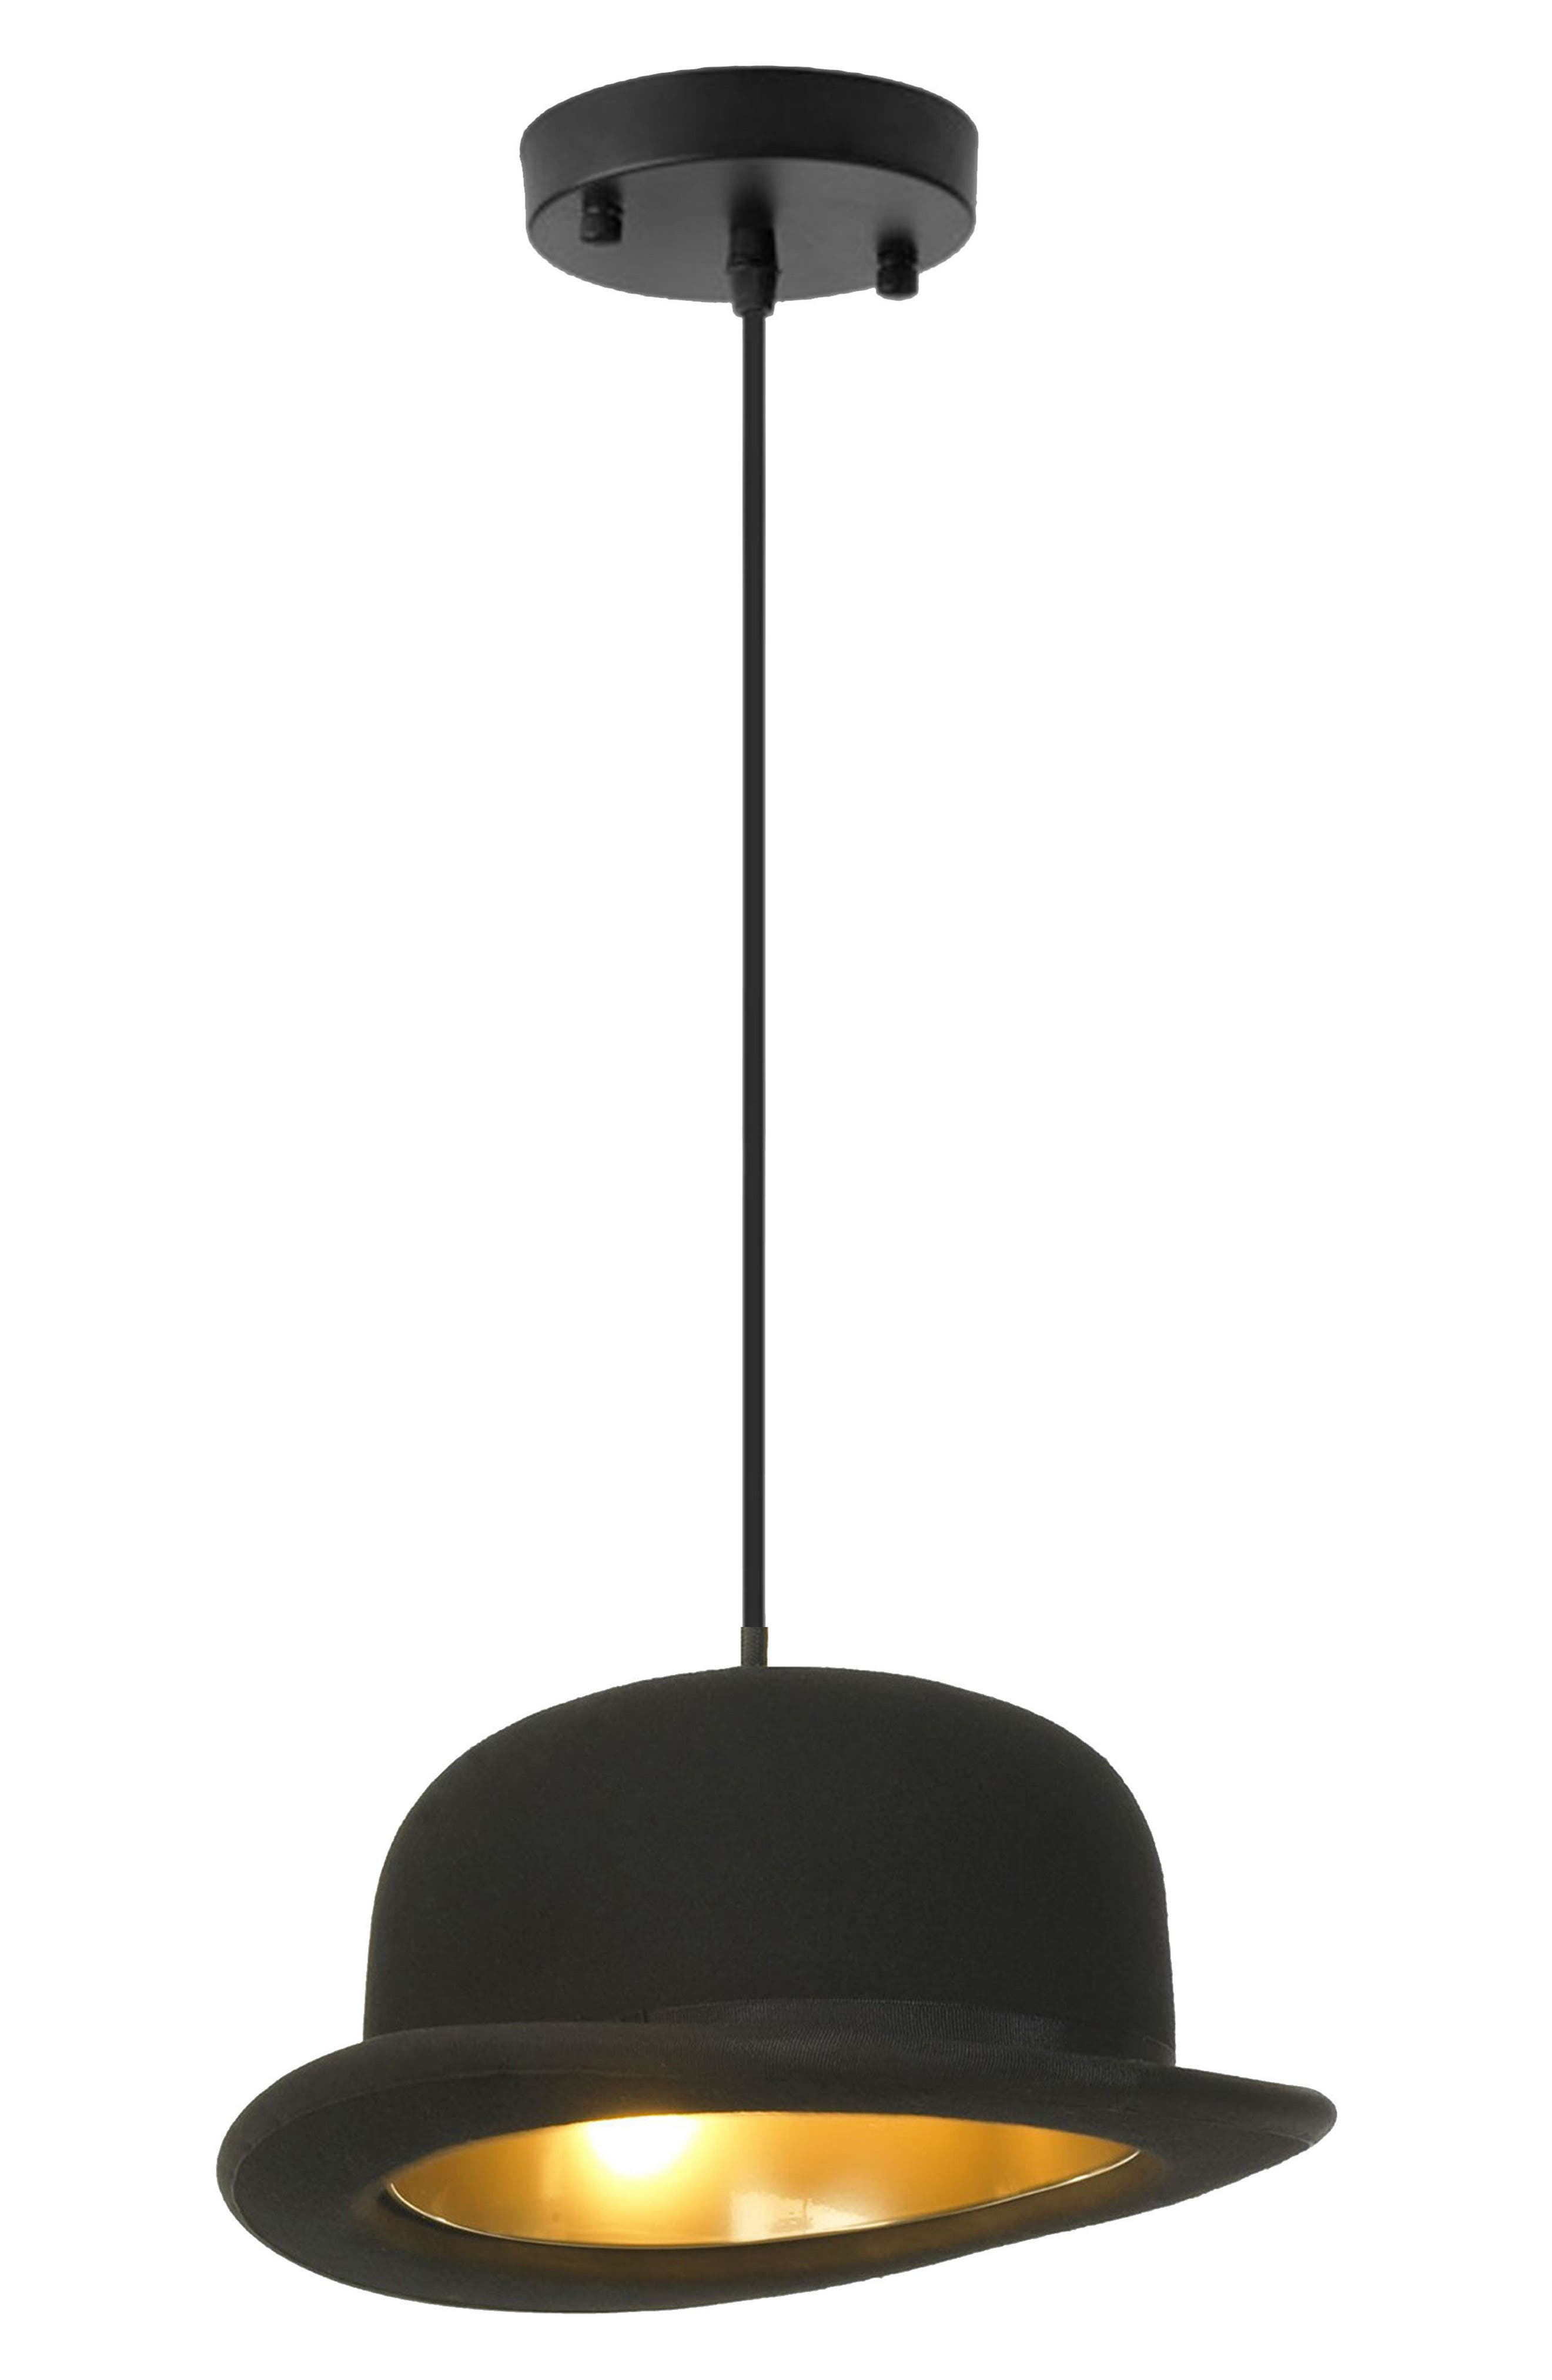 Blaxton Bowler Hat Ceiling Fixture,                         Main,                         color,